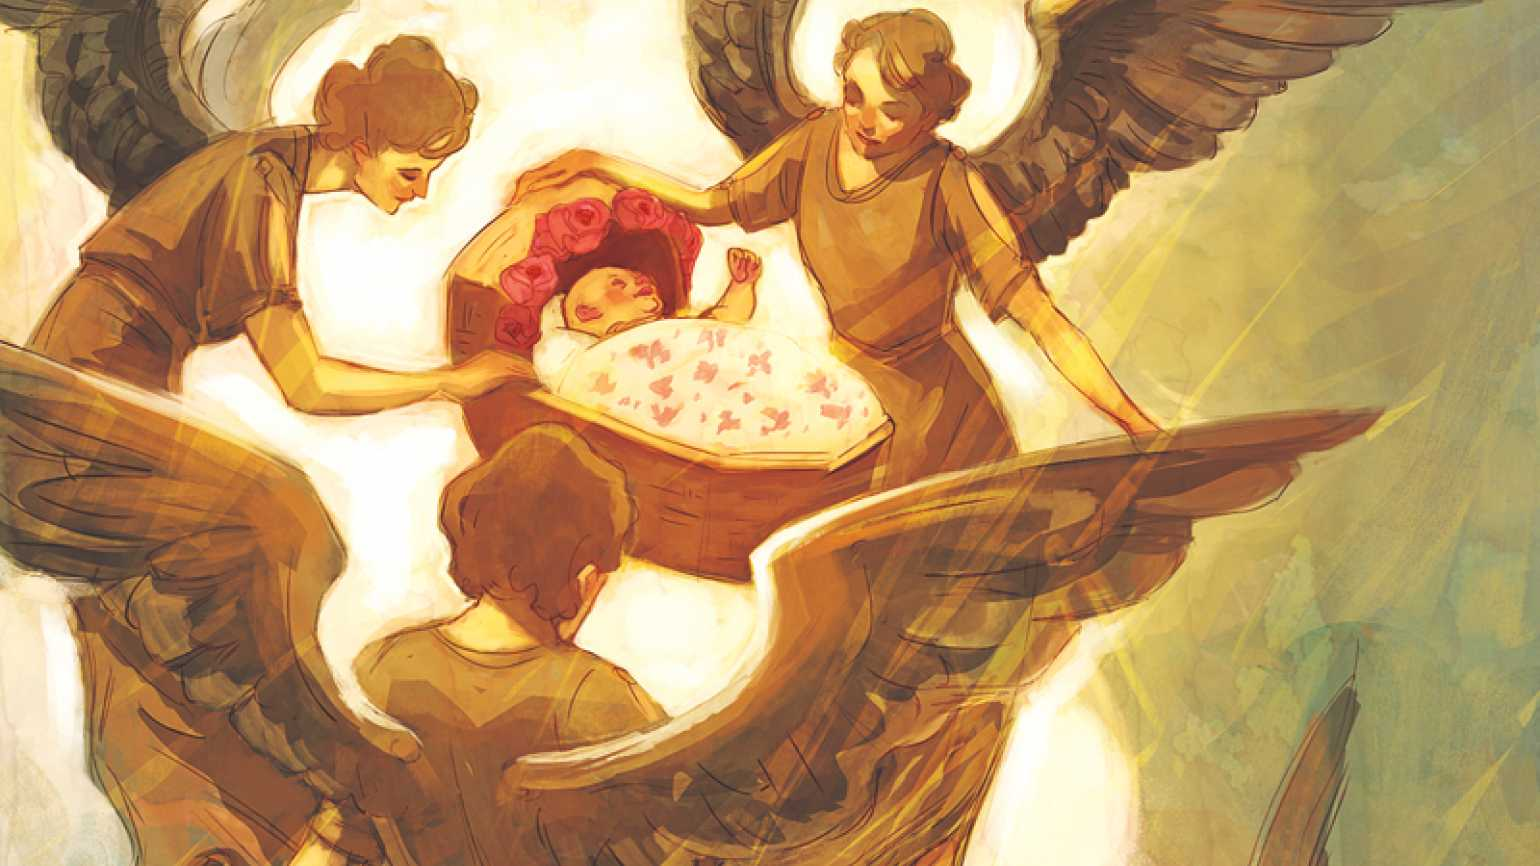 An artist's rendering of a trio of a winged angels carrying a baby in a cradle.